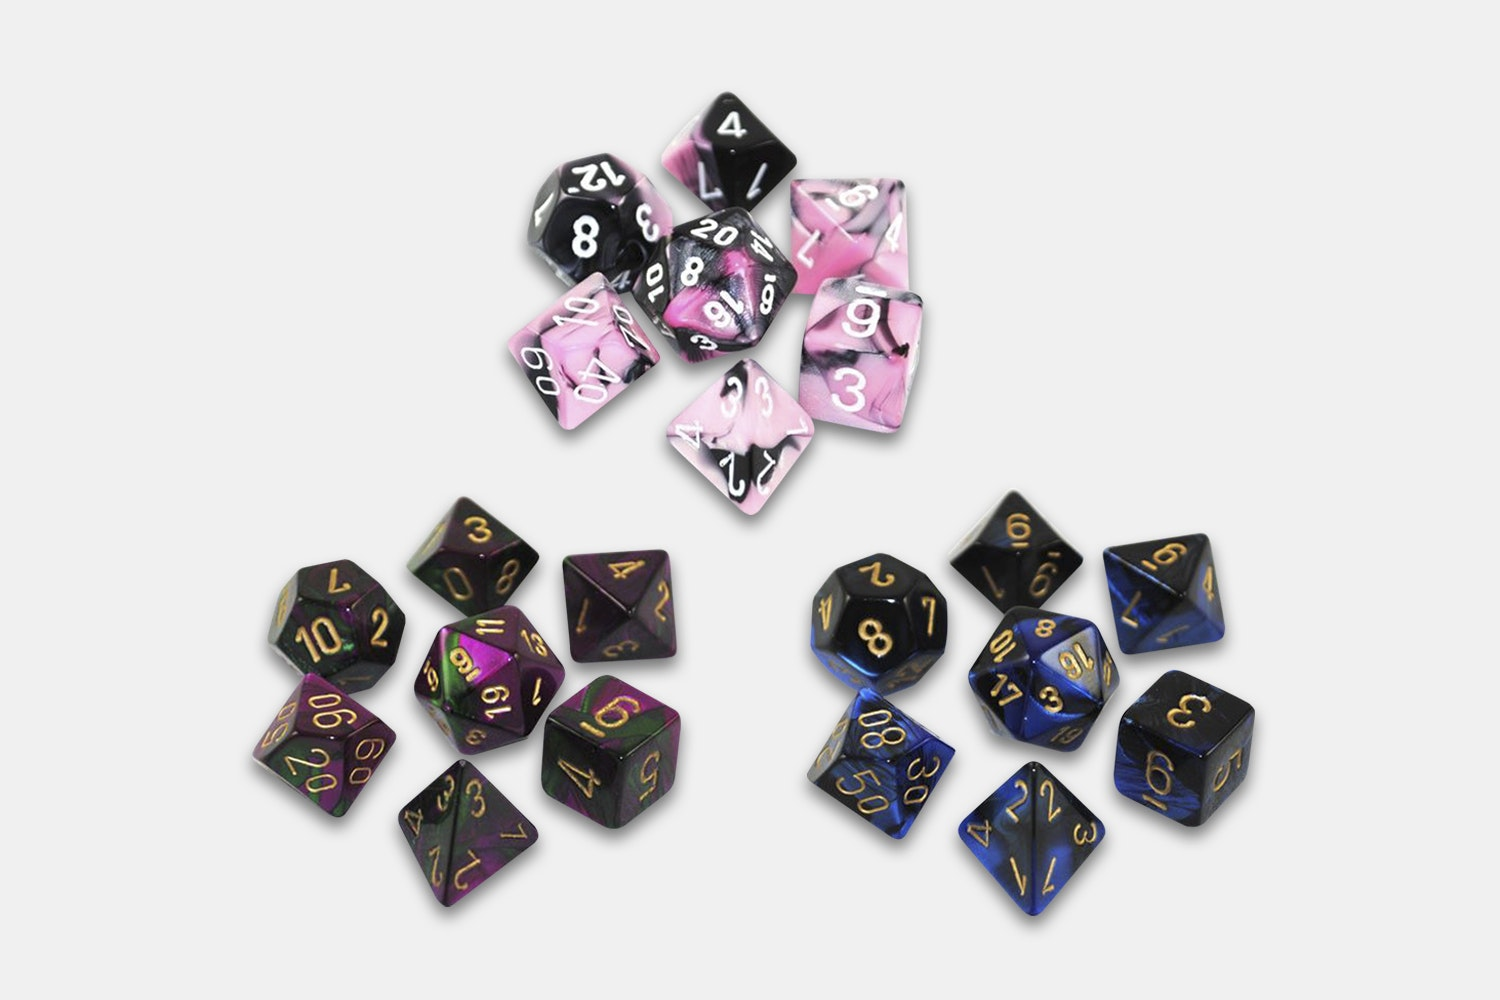 Chessex Gemini 7-Die Dice Sets (3-Pack)